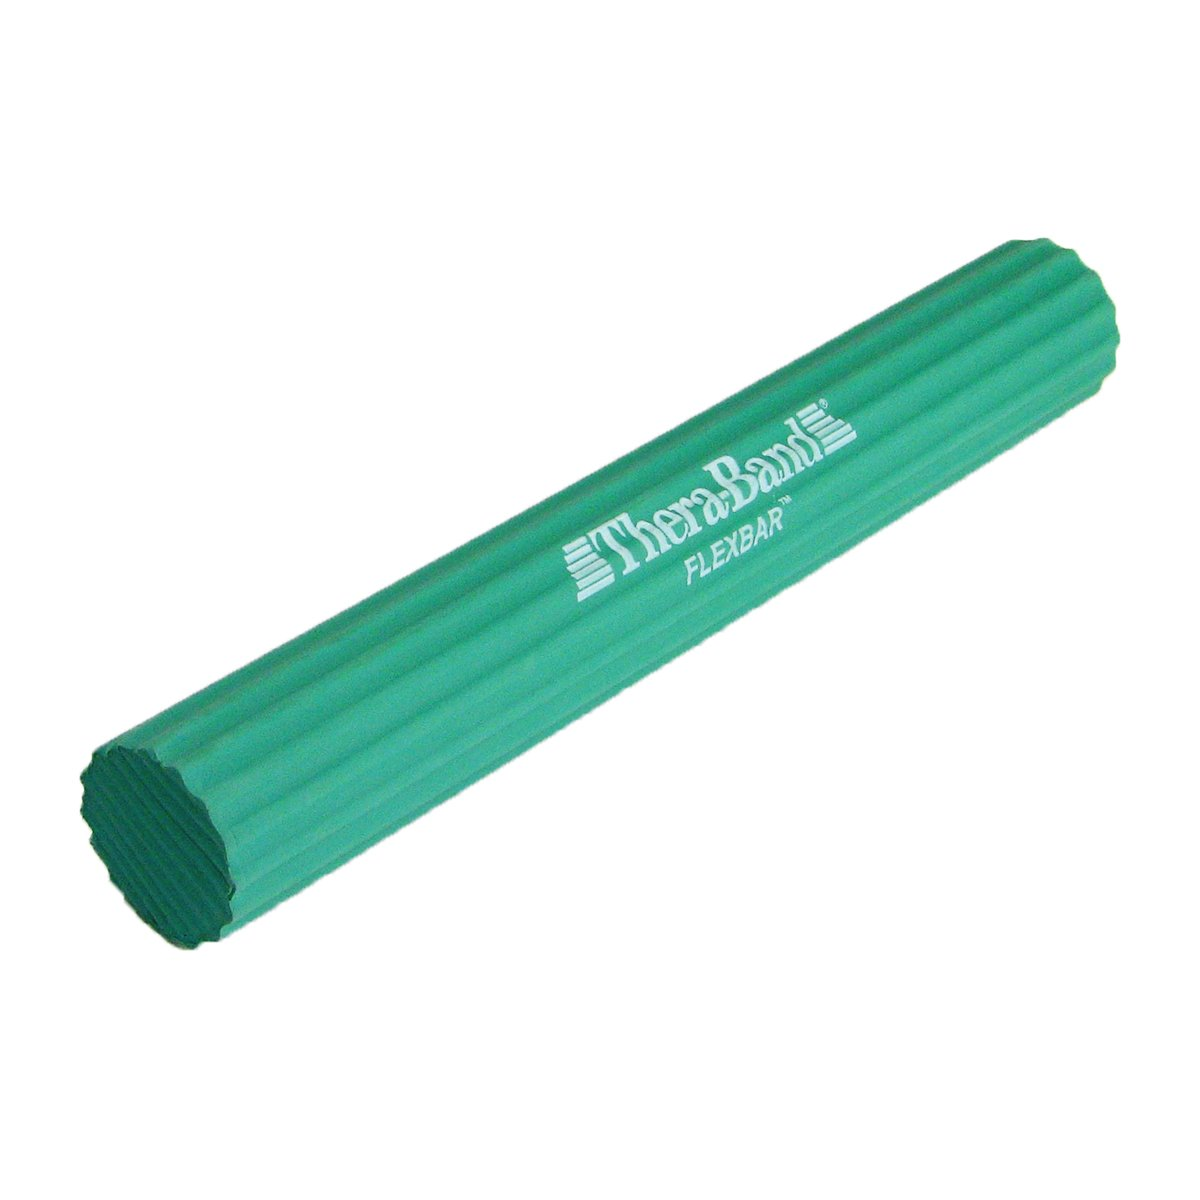 TheraBand FlexBar Resistance Bar For Medial Epicondylitis, Relieve Tendonitis Pain & Improve Grip Strength, Tennis Elbow, Golfers Elbow, and Tendinitis, Green, Medium, Intermediate